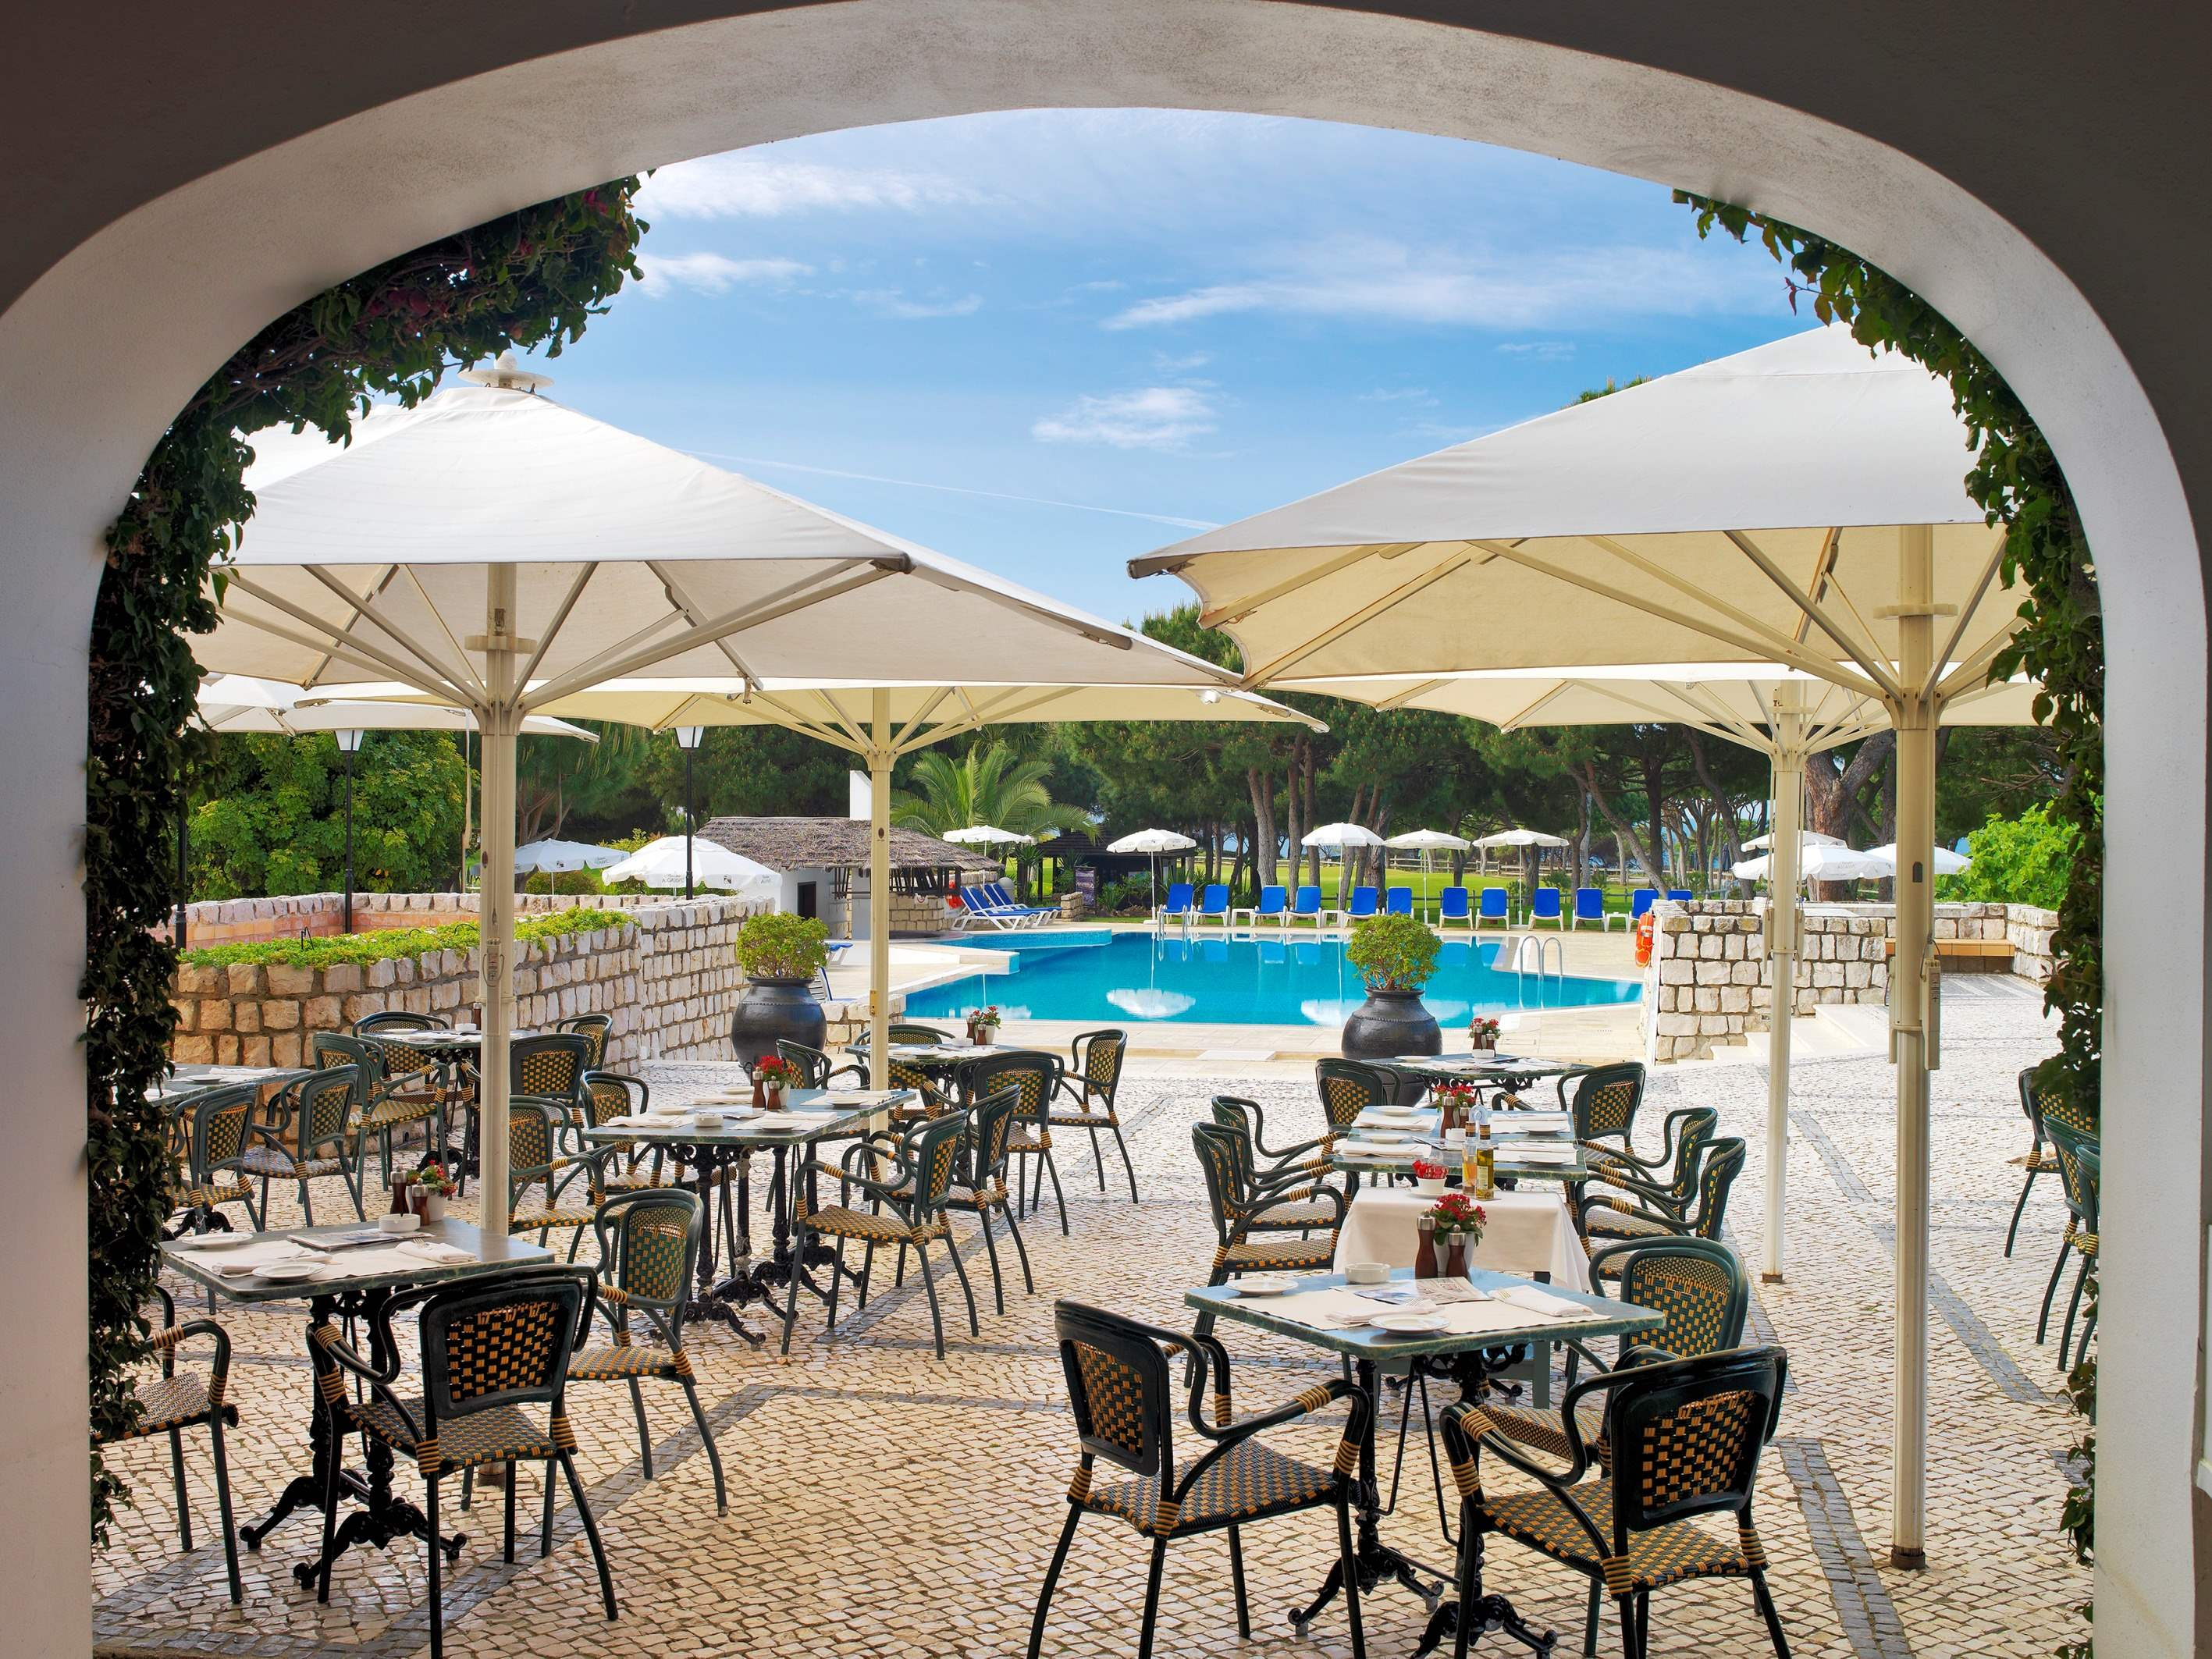 Pine Cliffs Terraces, 2 Bedroom, room only basis , 2 bedroom villa in Pine Cliffs Resort, Algarve Photo #30